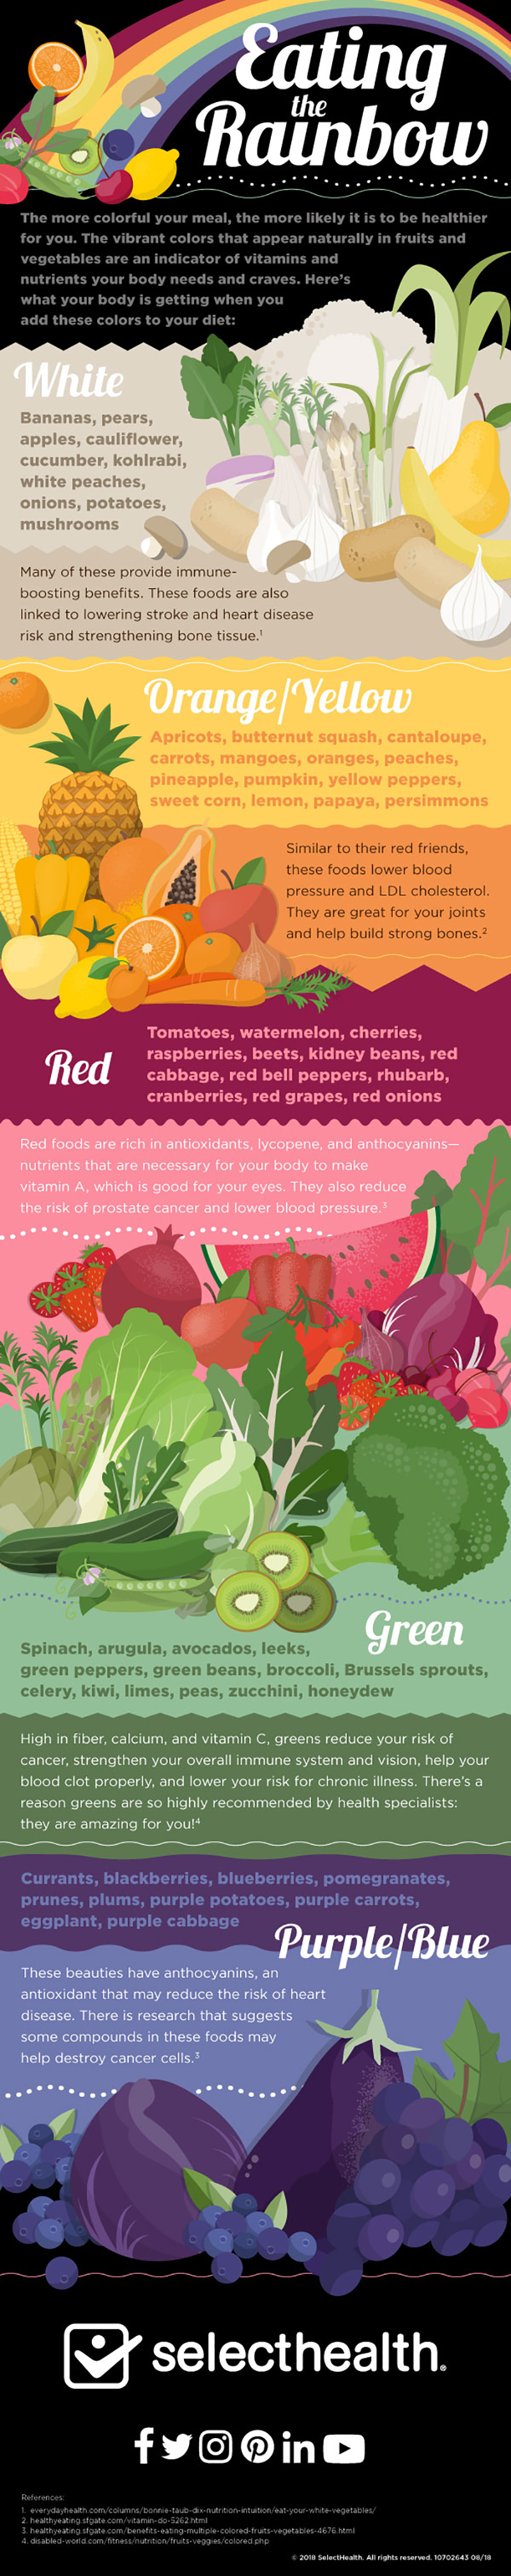 Infographic illustrating different ways to incorporated color into your diet, eating the rainbow